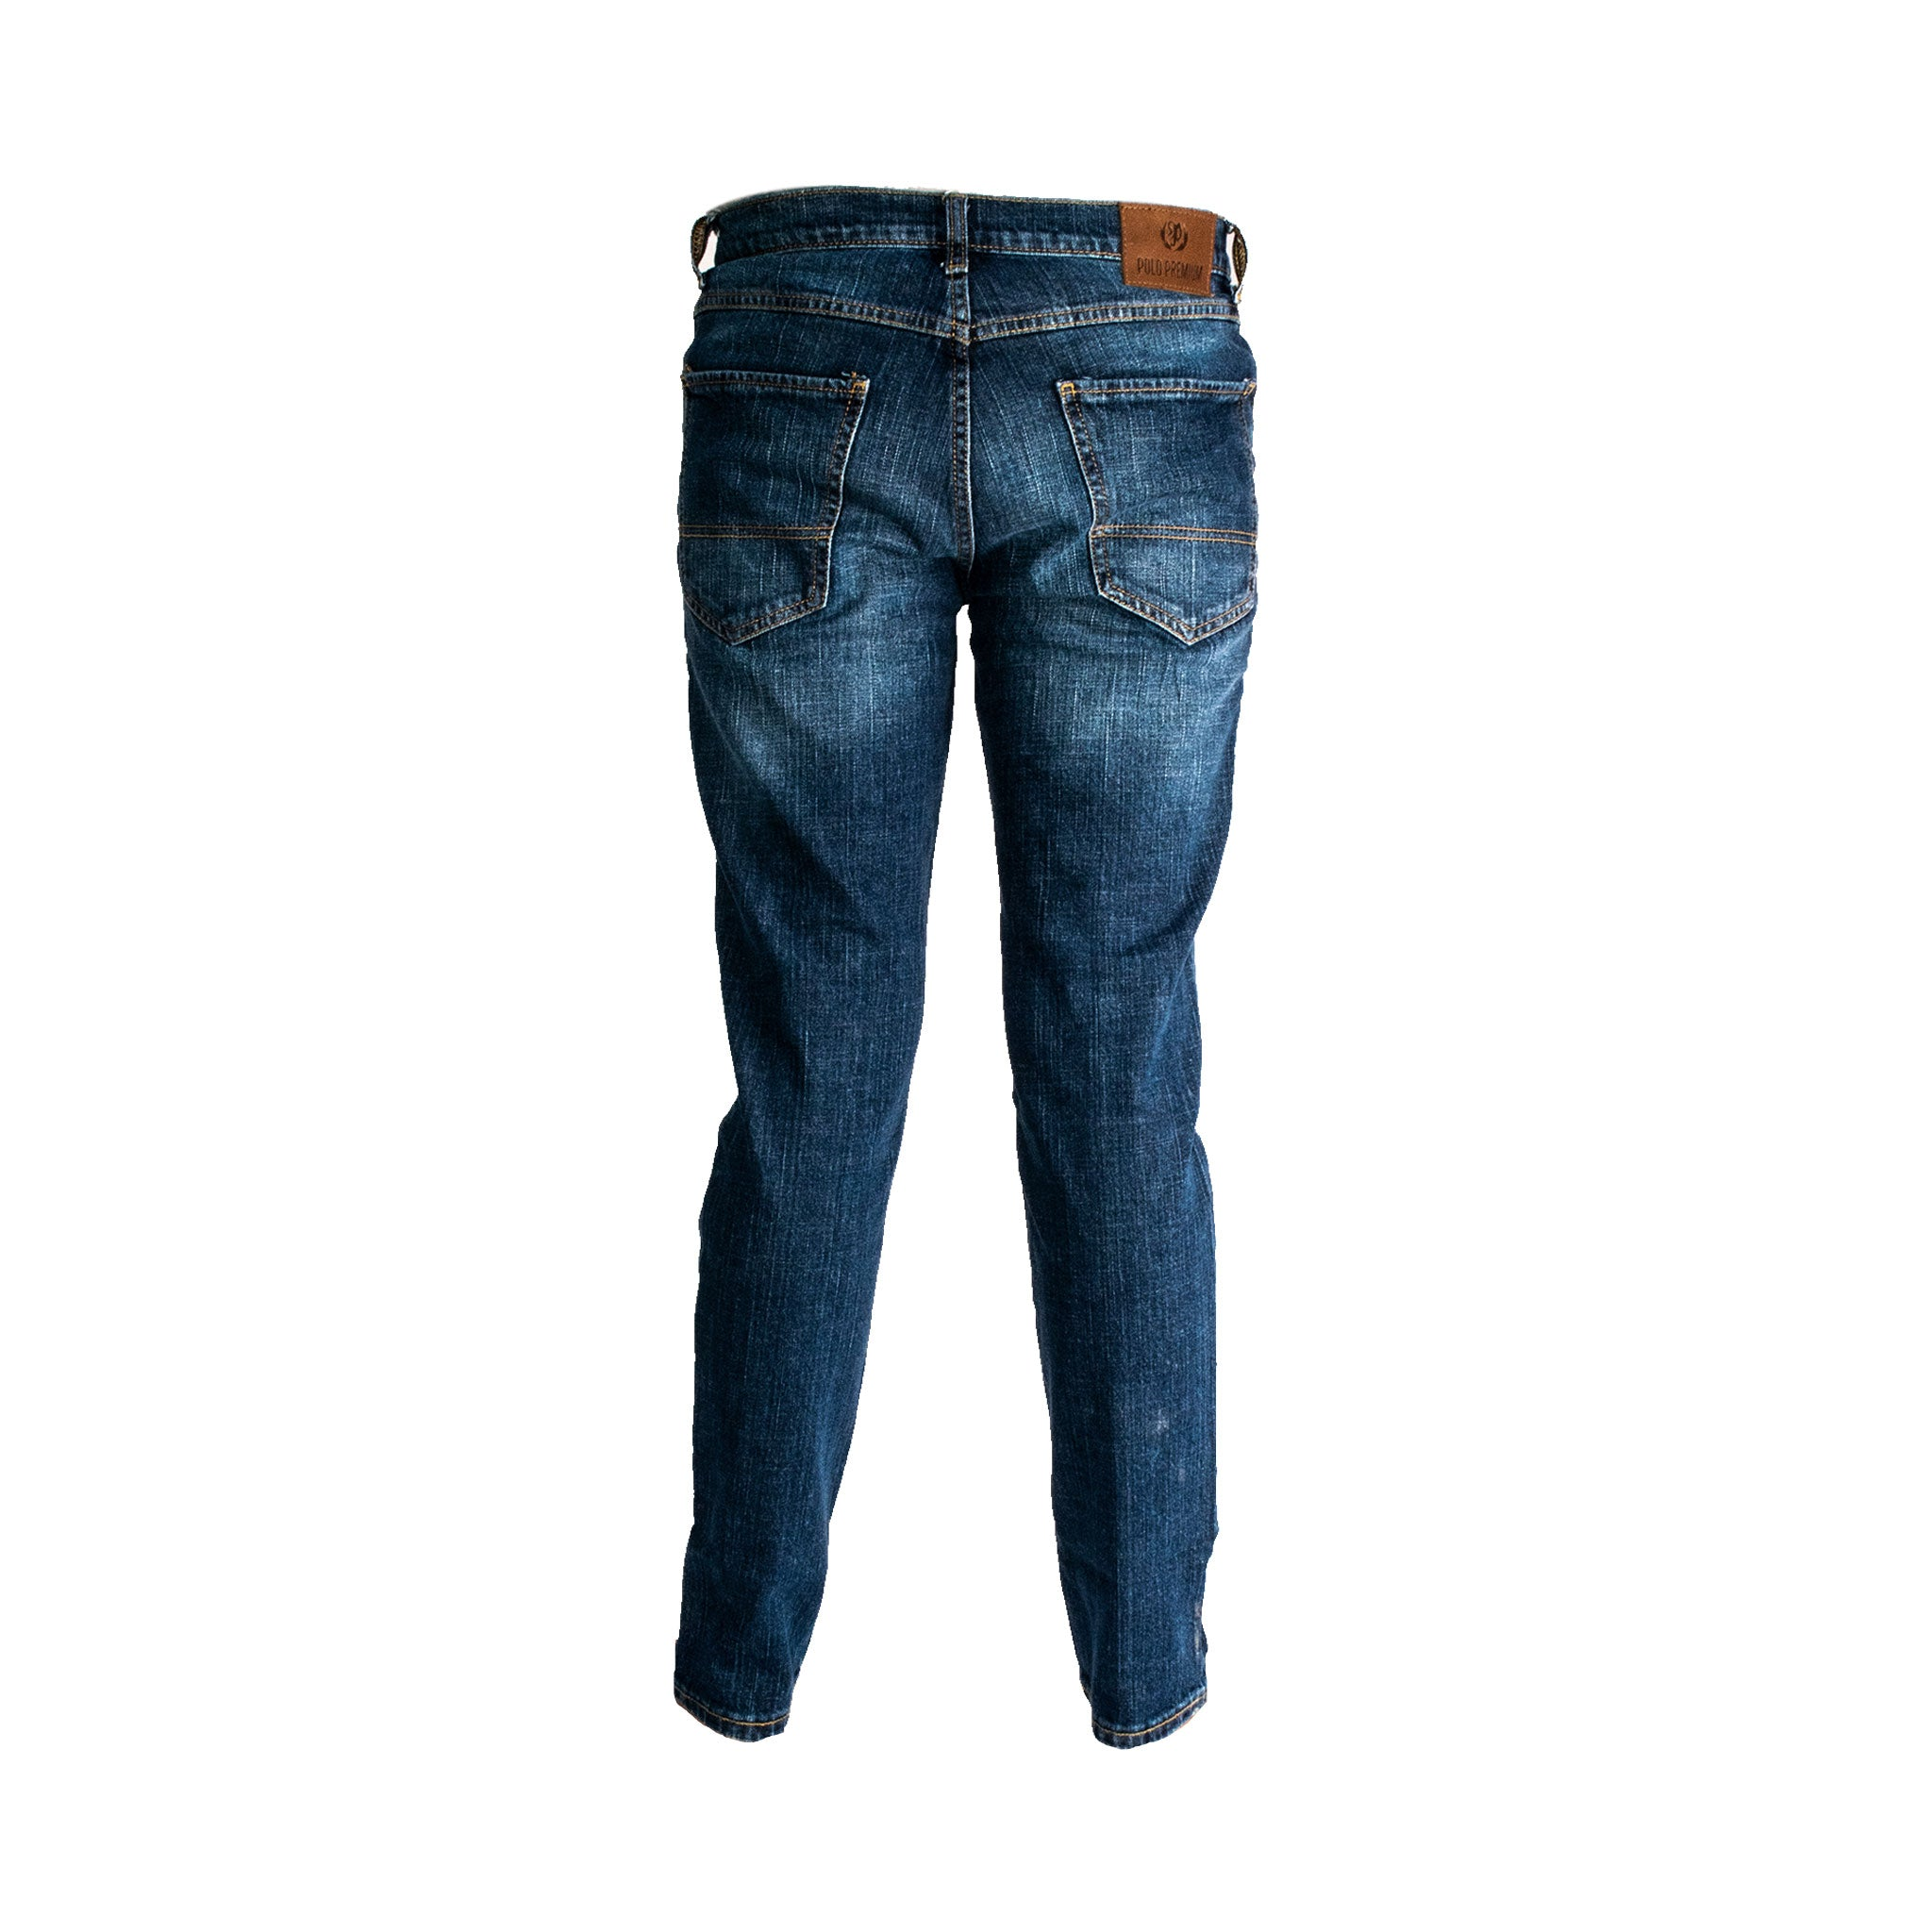 MEN'S DENIM JEANS PANT - FTWO - Export Mall